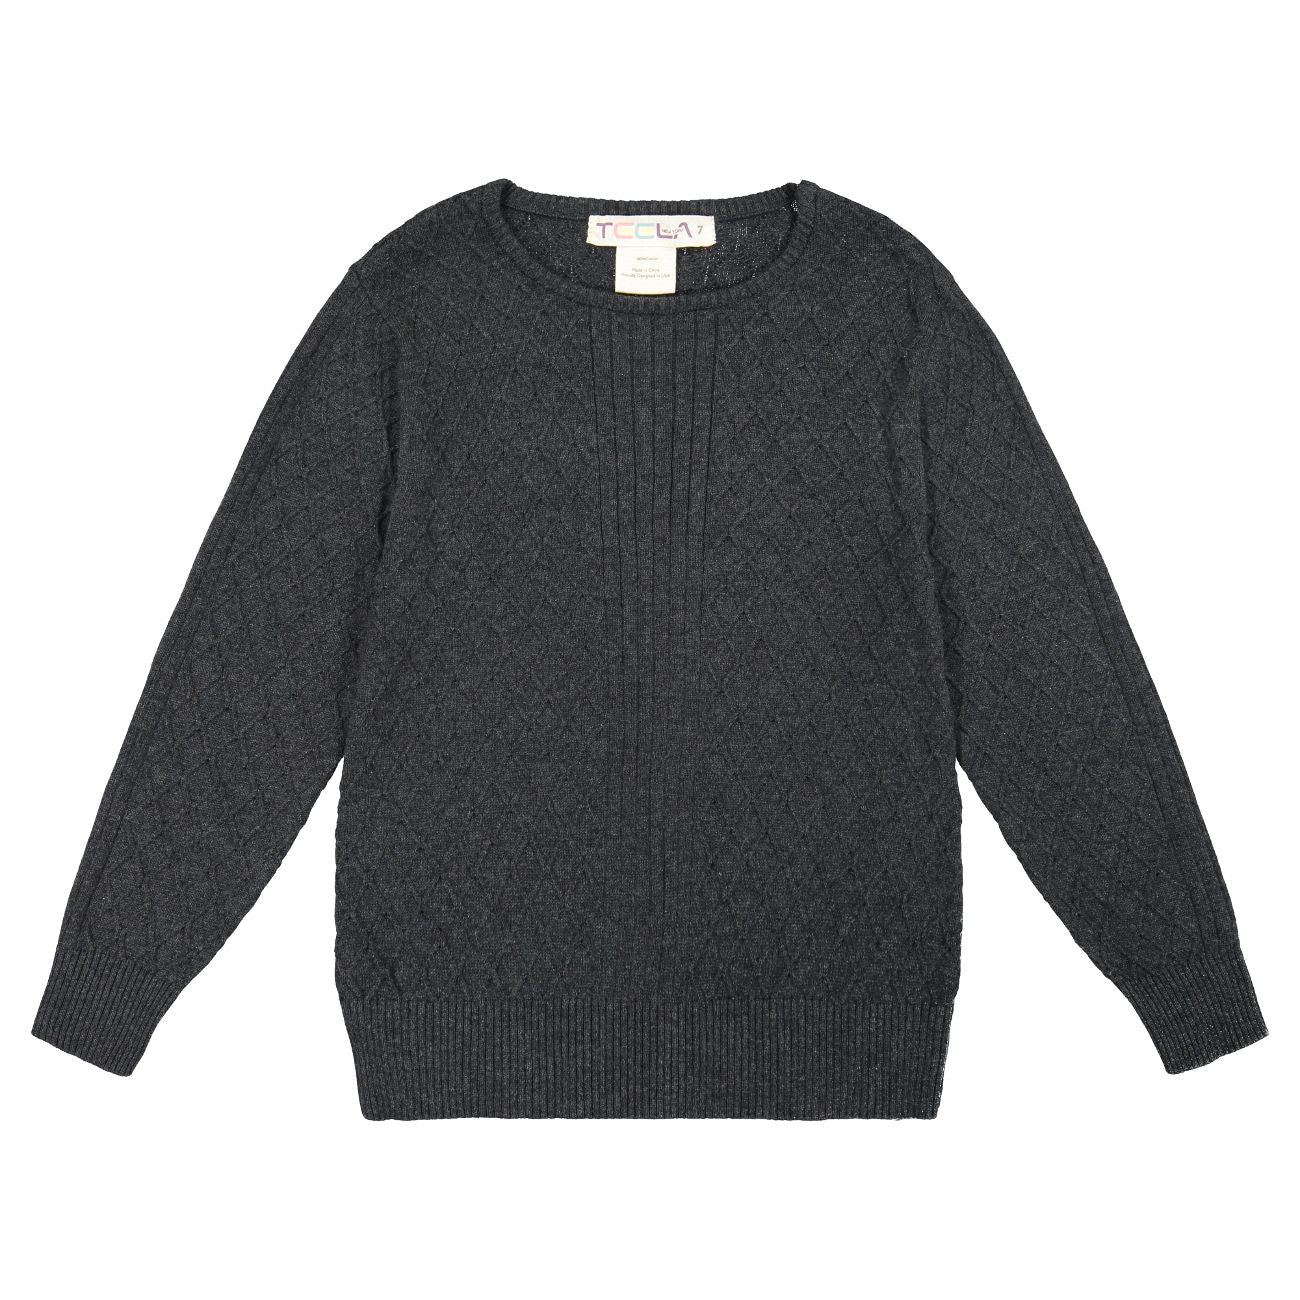 Teela Charcoal Cable Knit Top